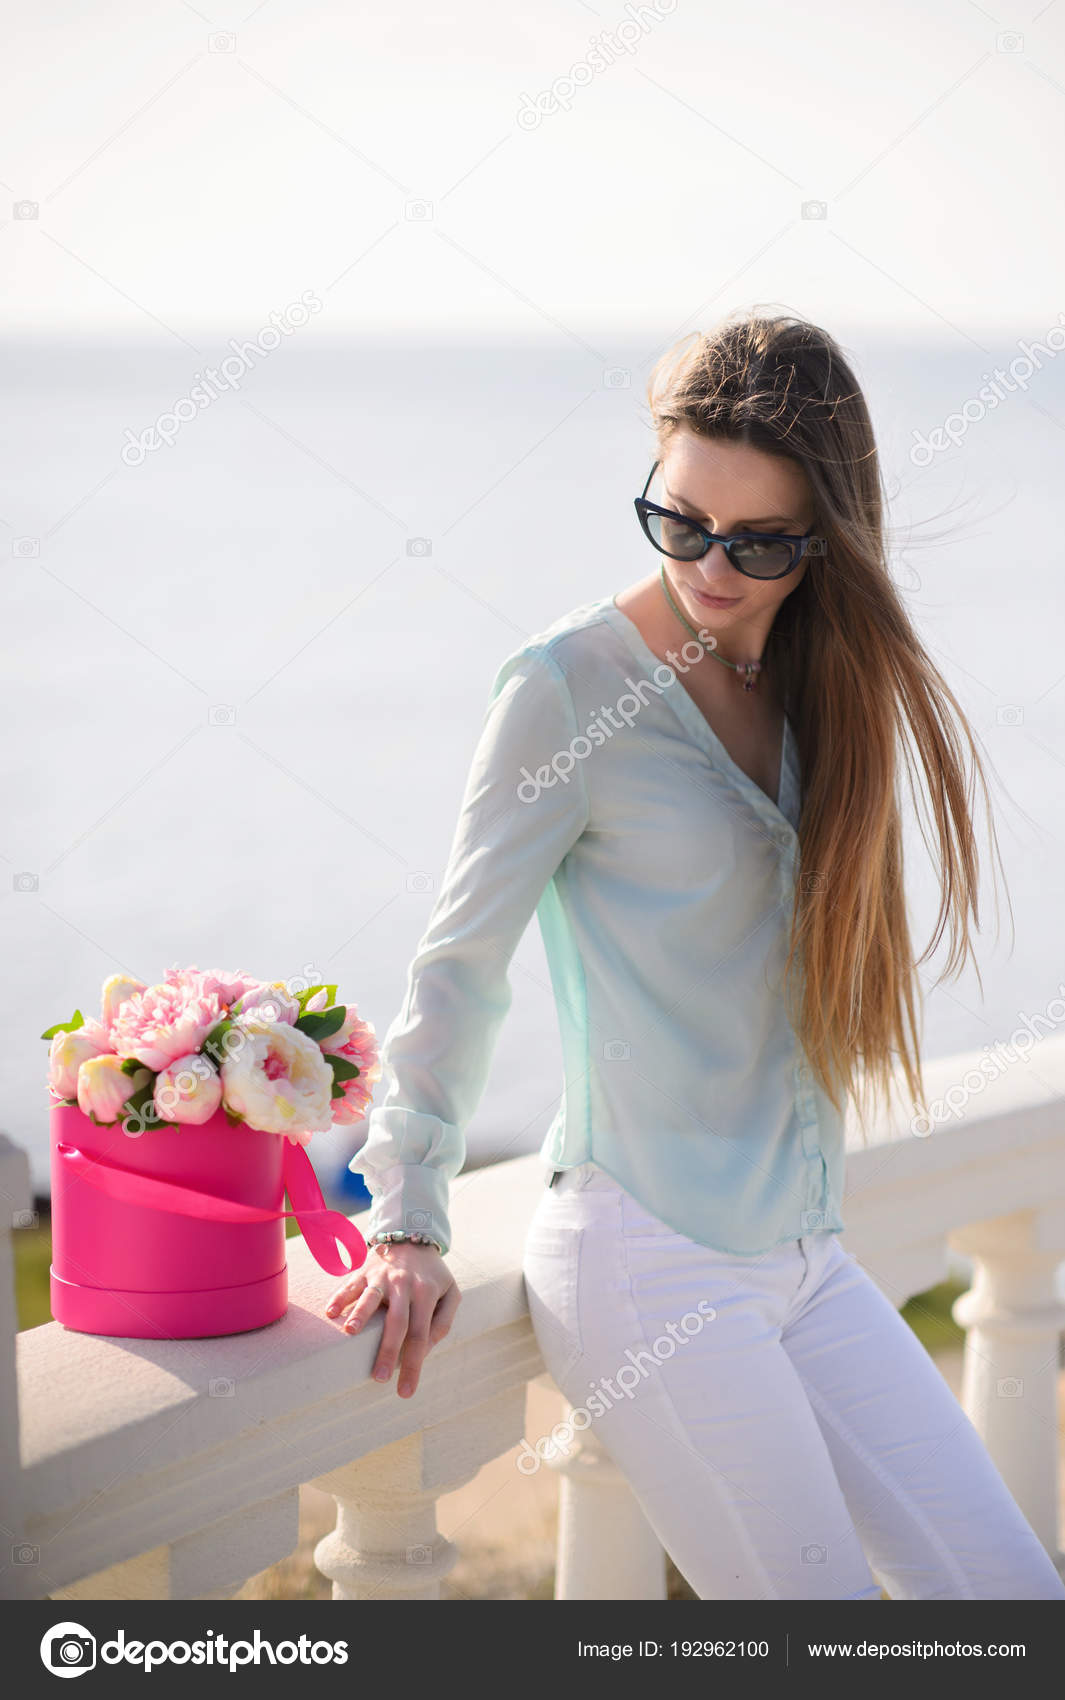 Beautiful girl with flowers in hands outdoors stock photo beautiful girl with flowers in hands outdoors stock photo izmirmasajfo